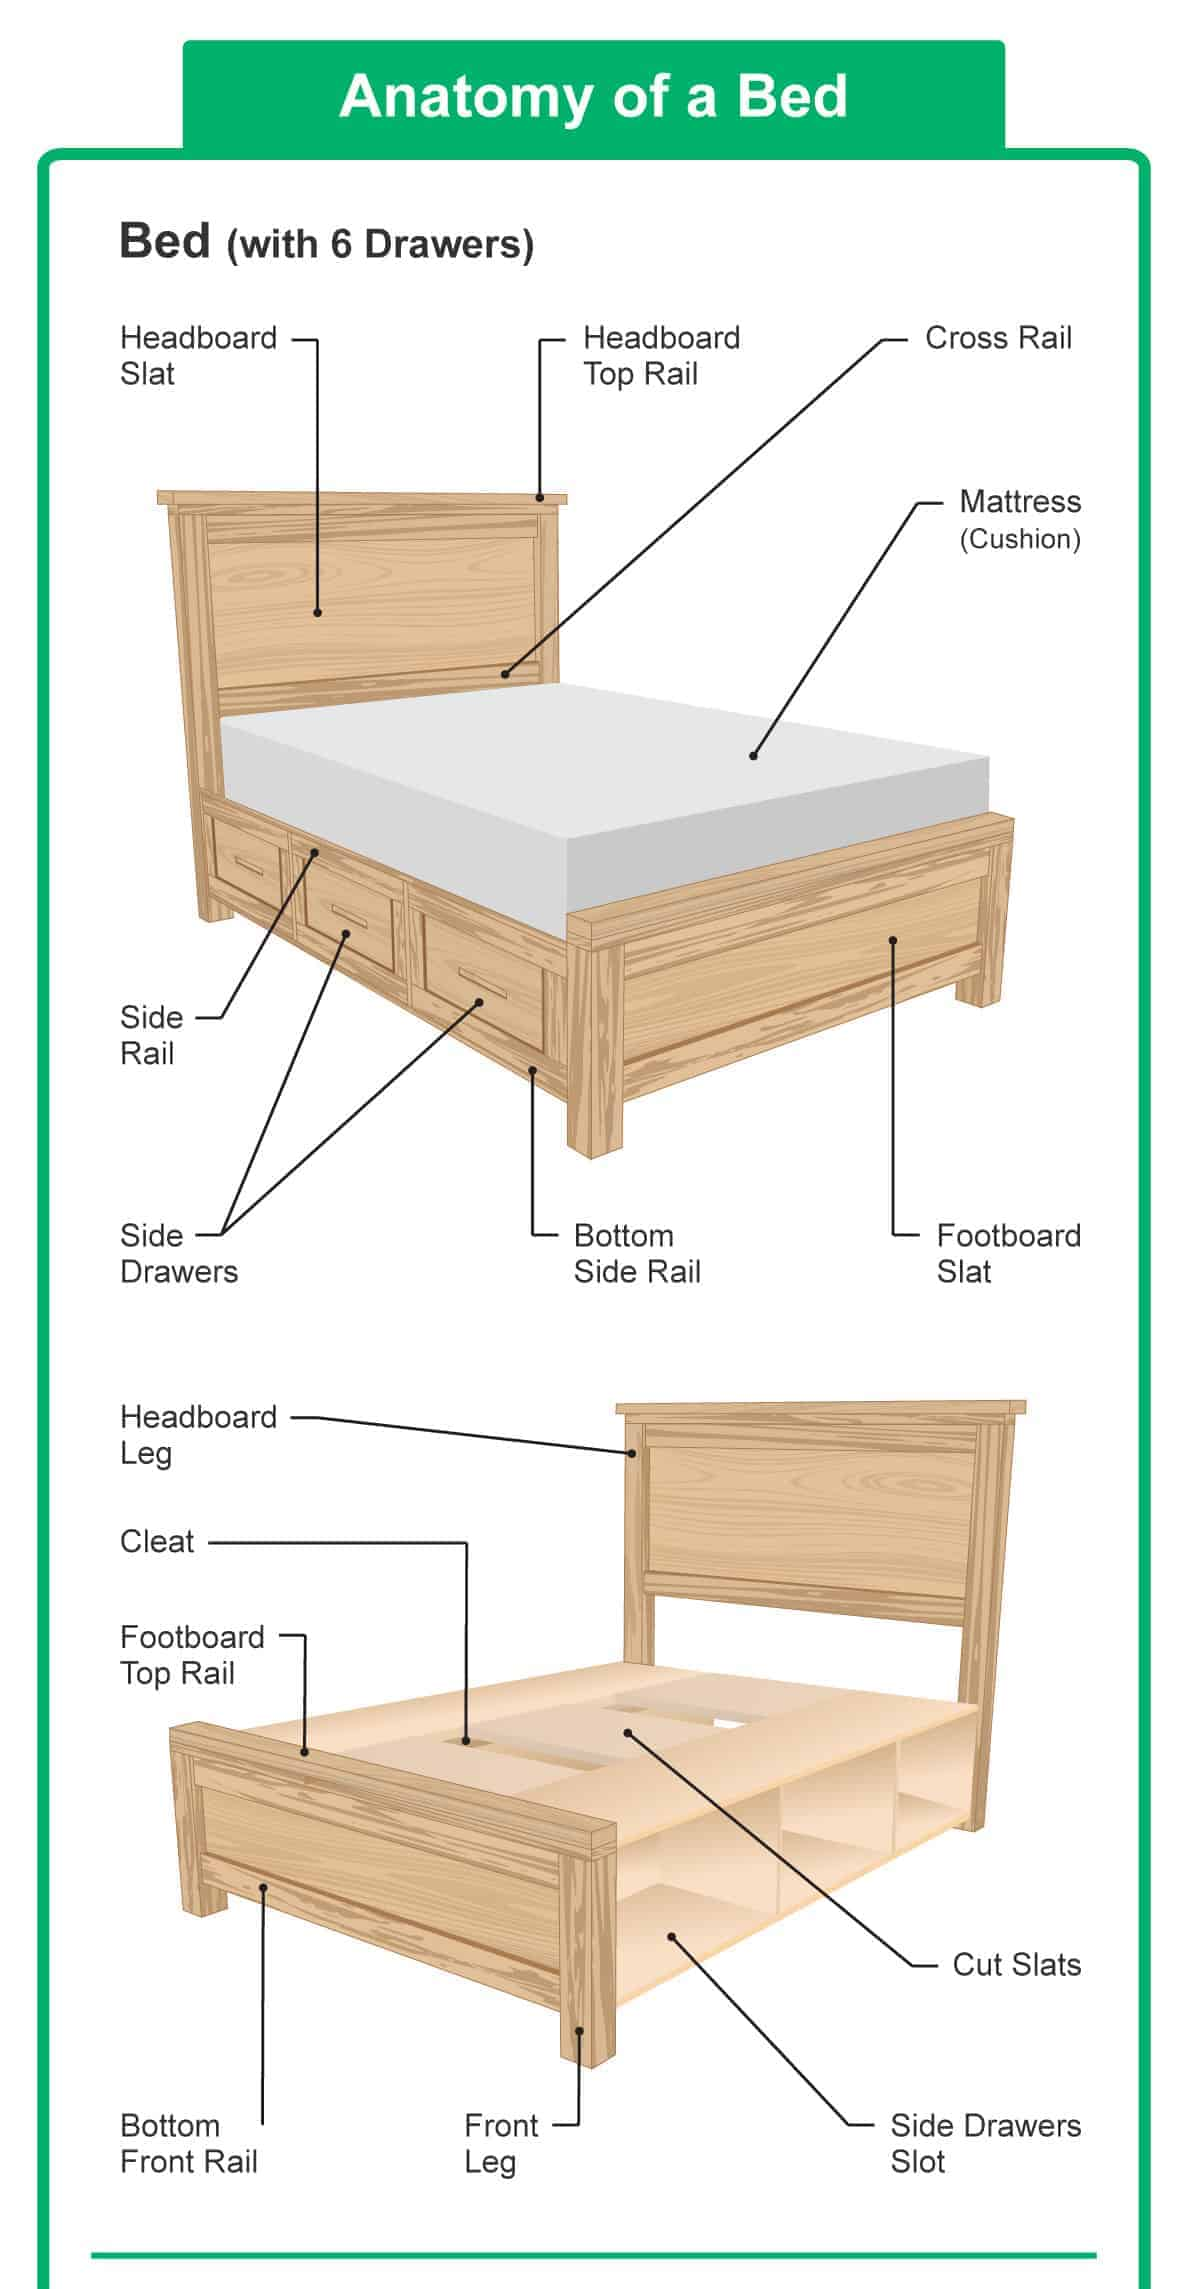 hight resolution of diagram illustrating the different parts of a bed